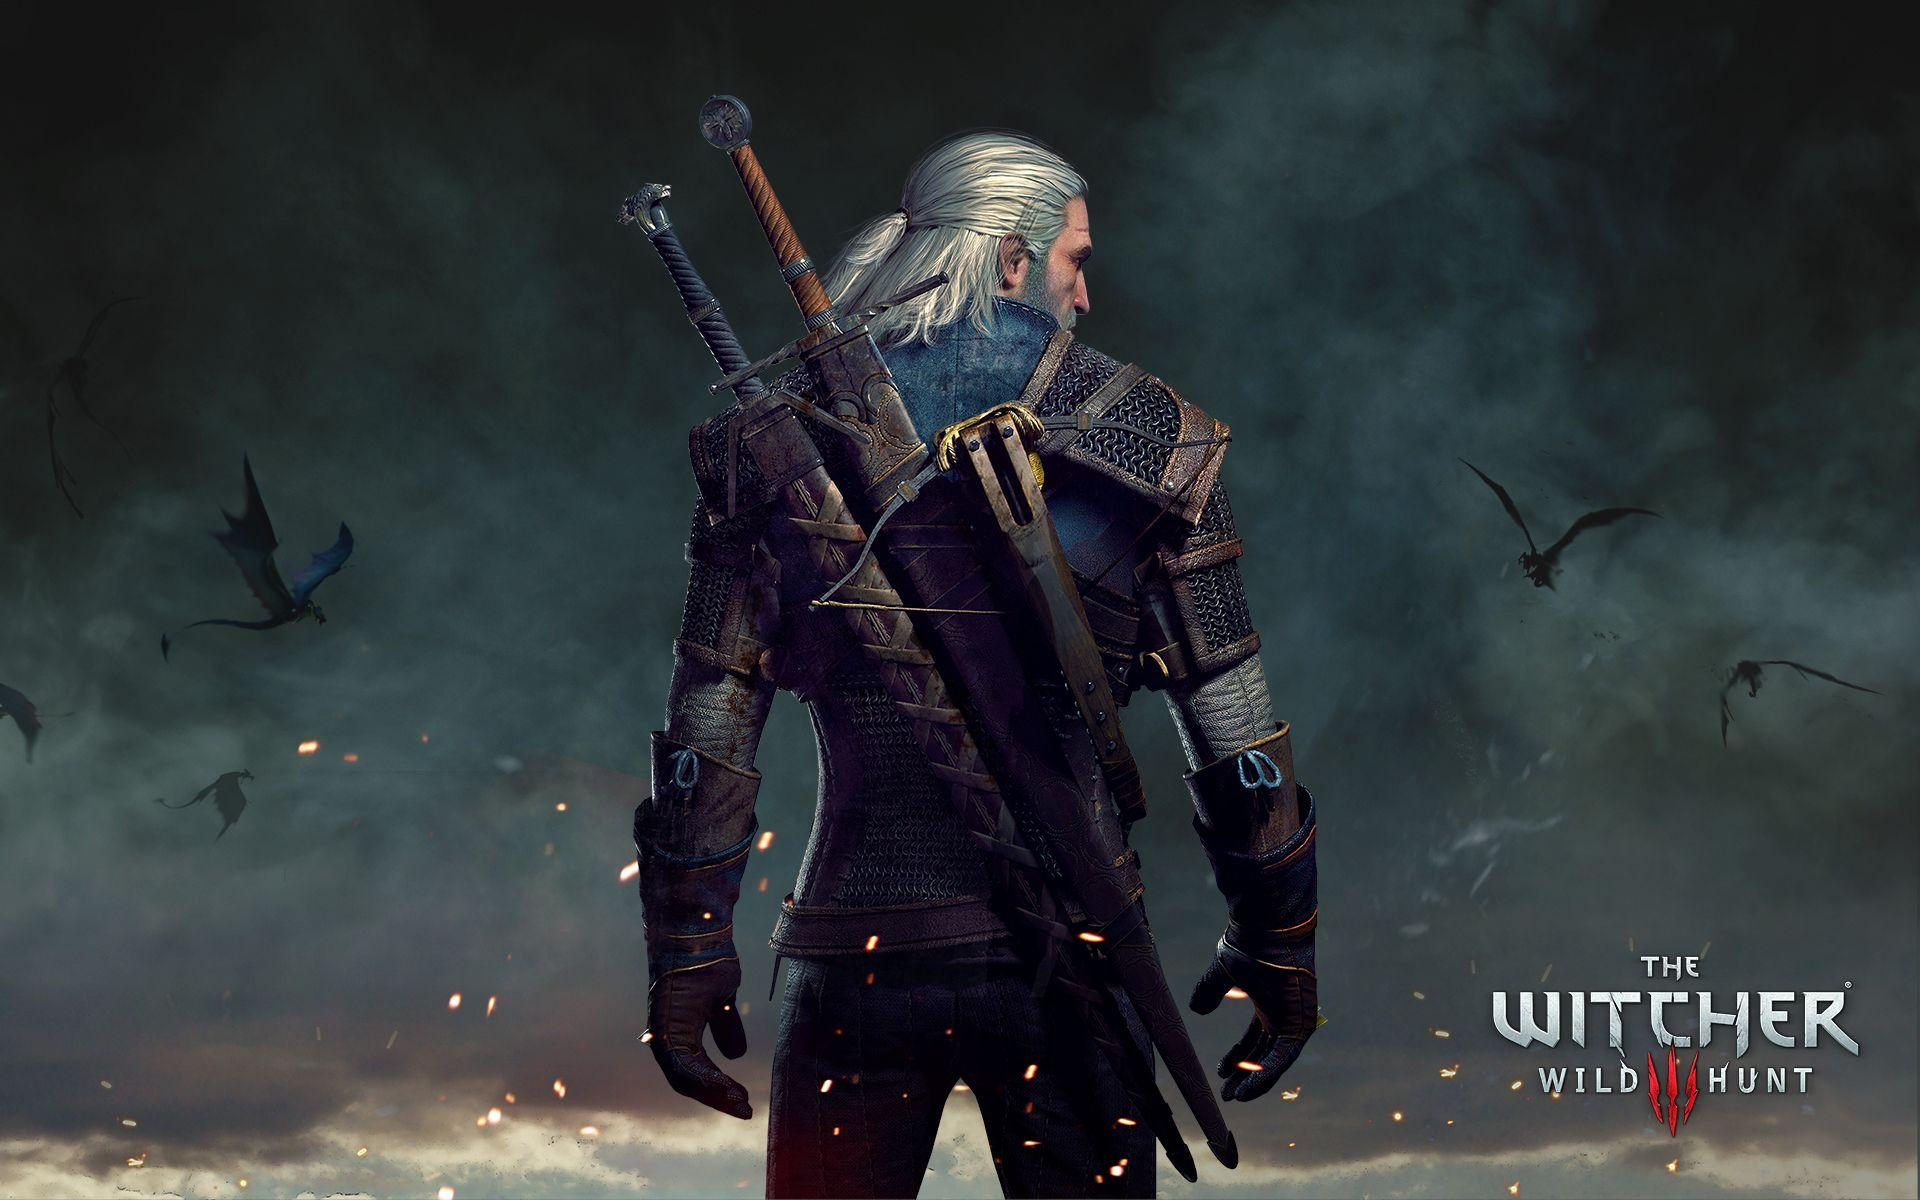 The Witcher 3 Wild Hunt Wallpapers Wallpaper Cave